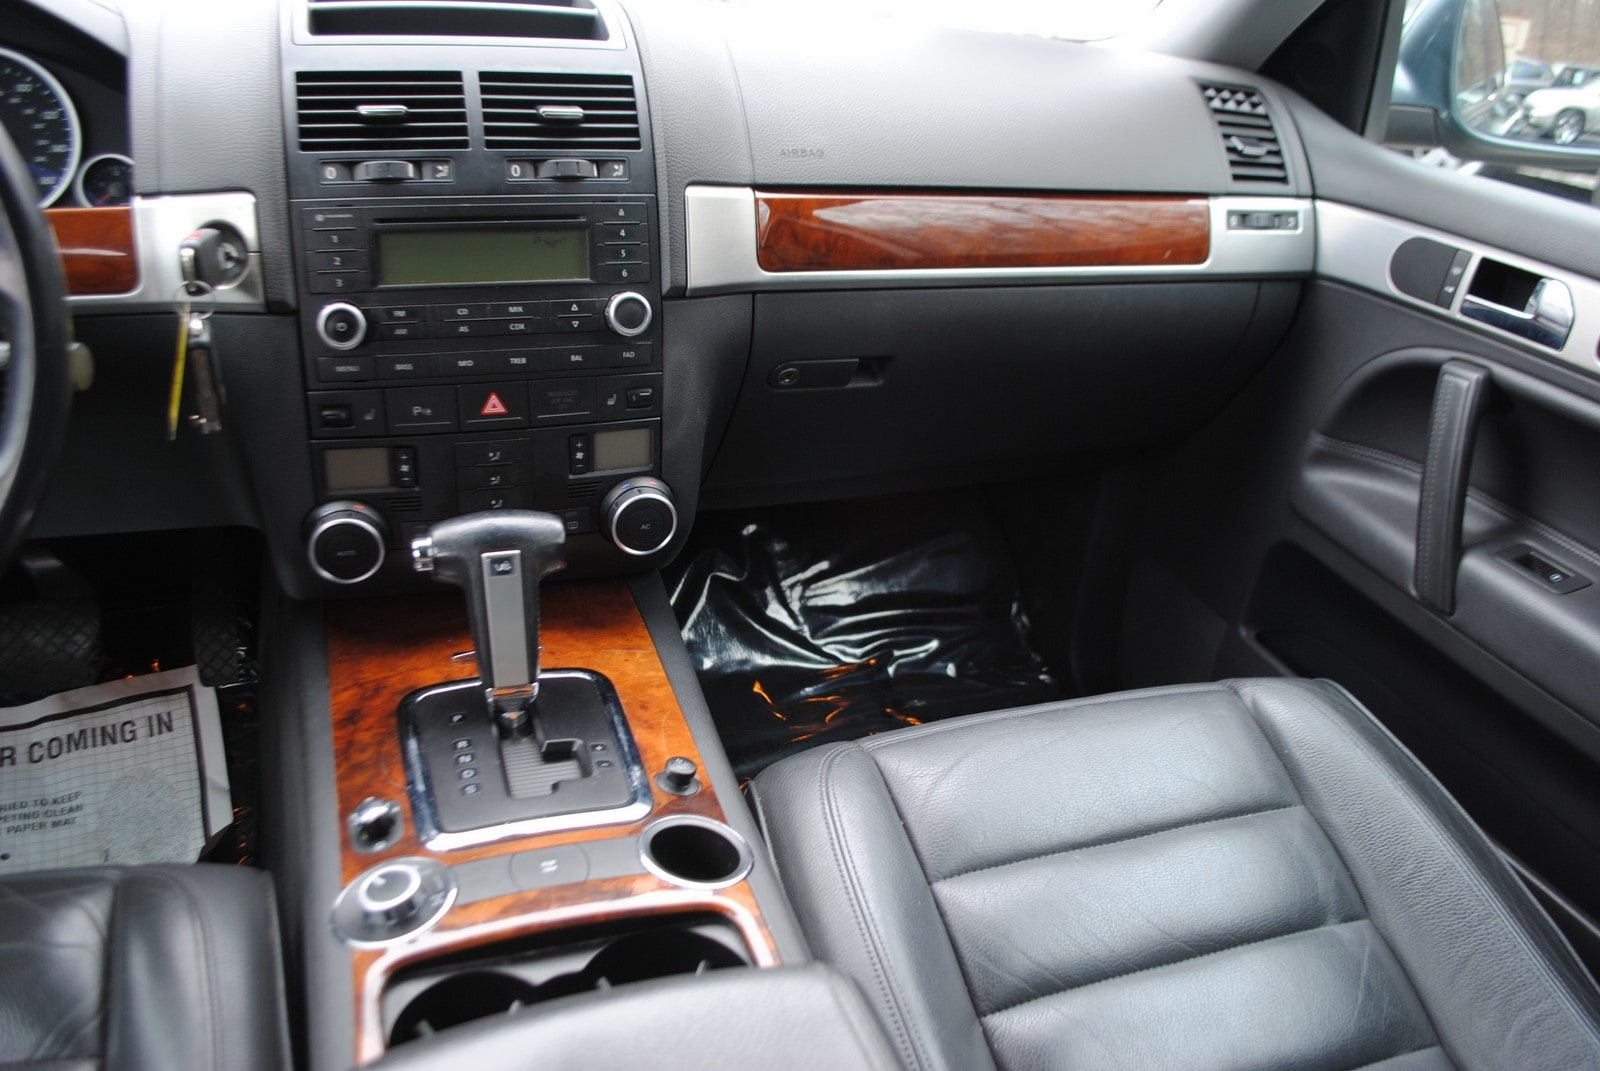 Used 2007 Volkswagen Touareg For Sale at Ramsey Corp    VIN